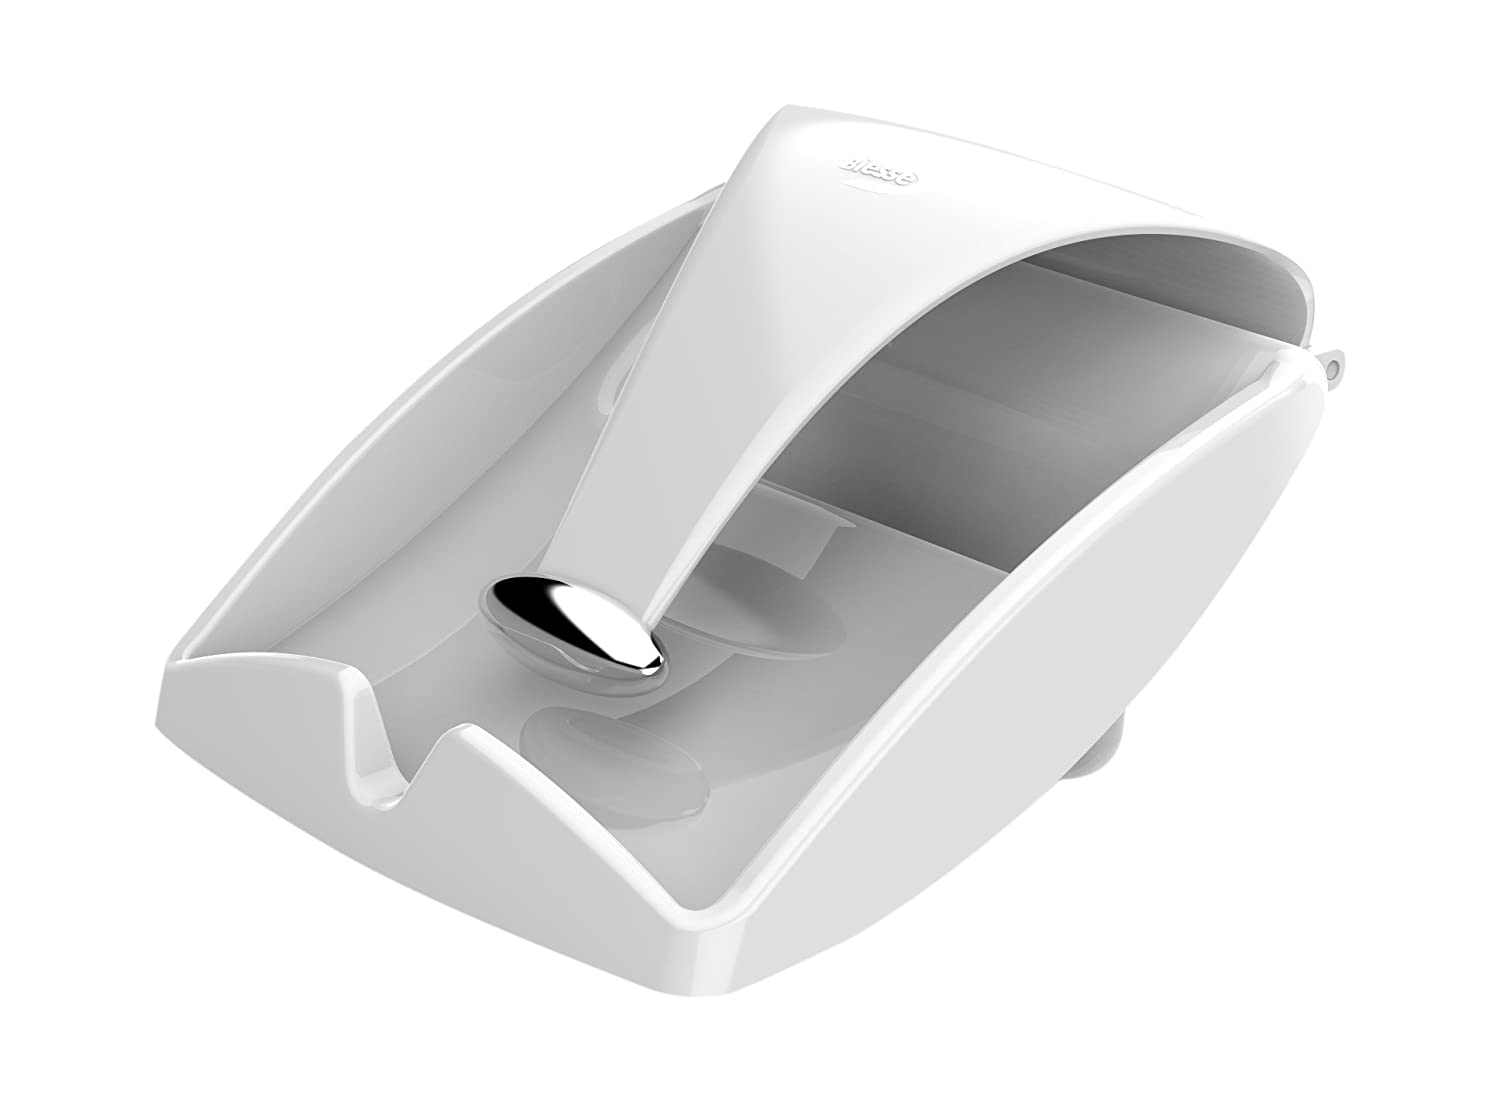 Biesse Casa Napkin Holder, White/Chrome ECOPLAST 0921